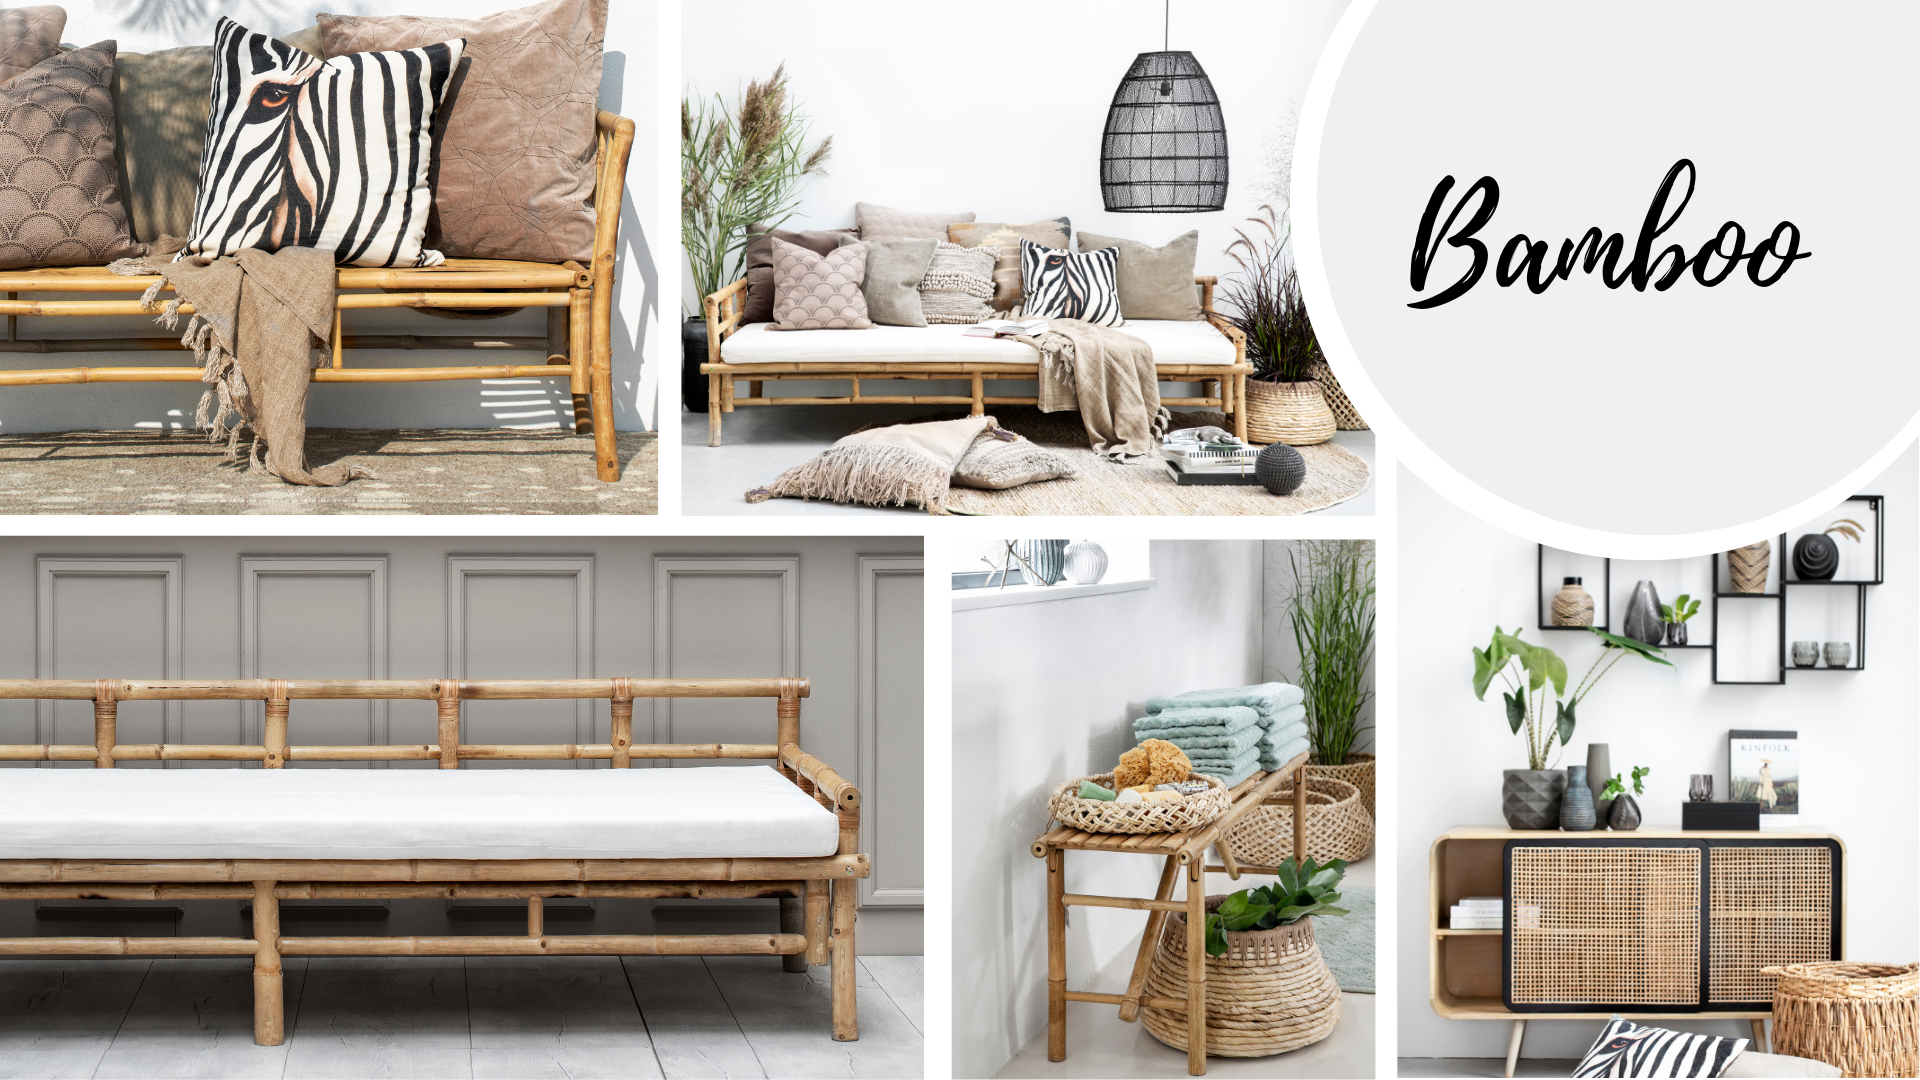 Bamboo collage with different furniture settings.